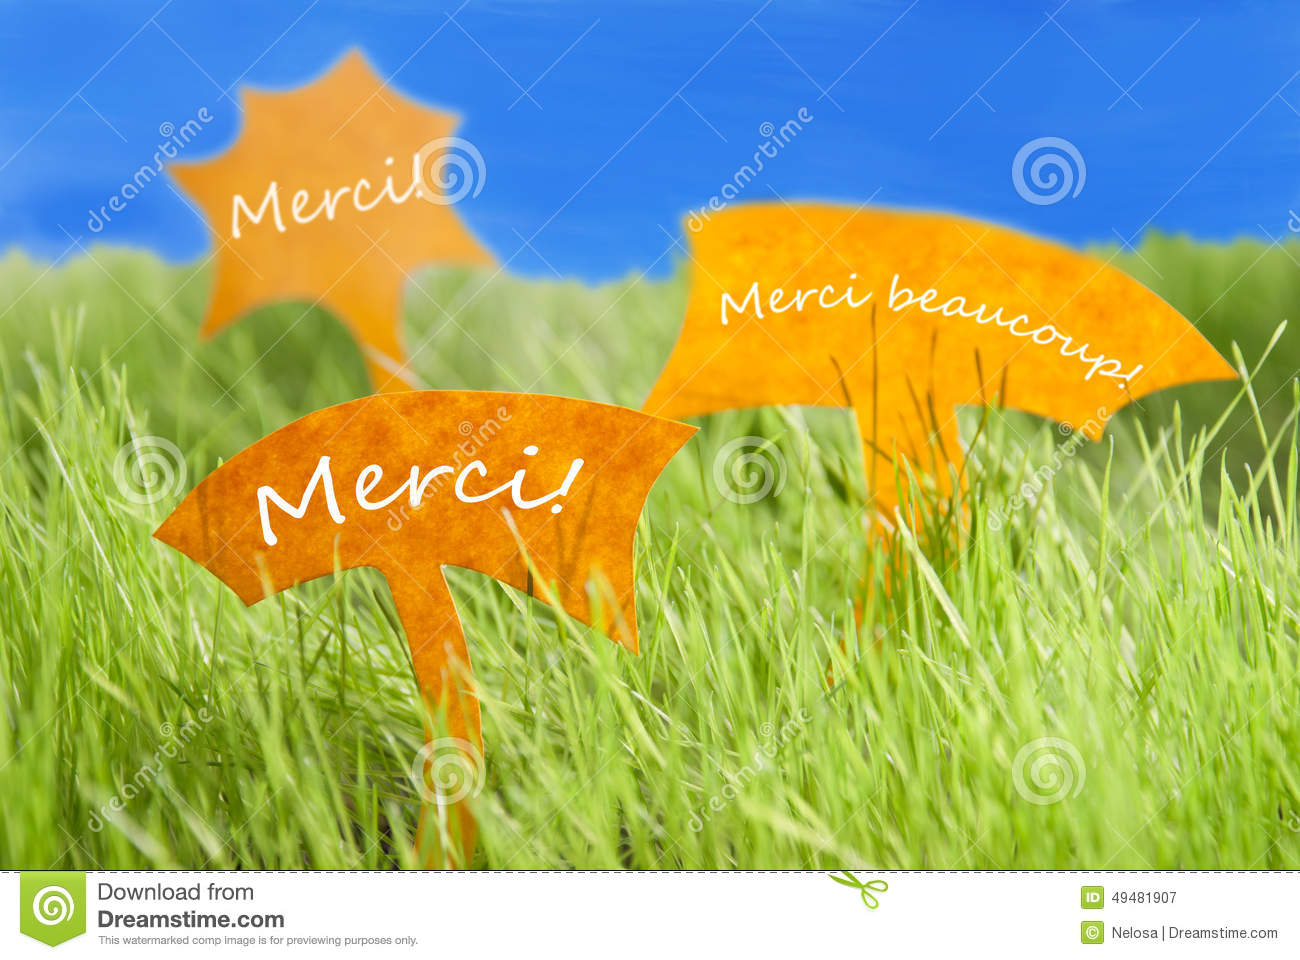 Three Labels With French Merci Which Means Thank You And Blue Sky